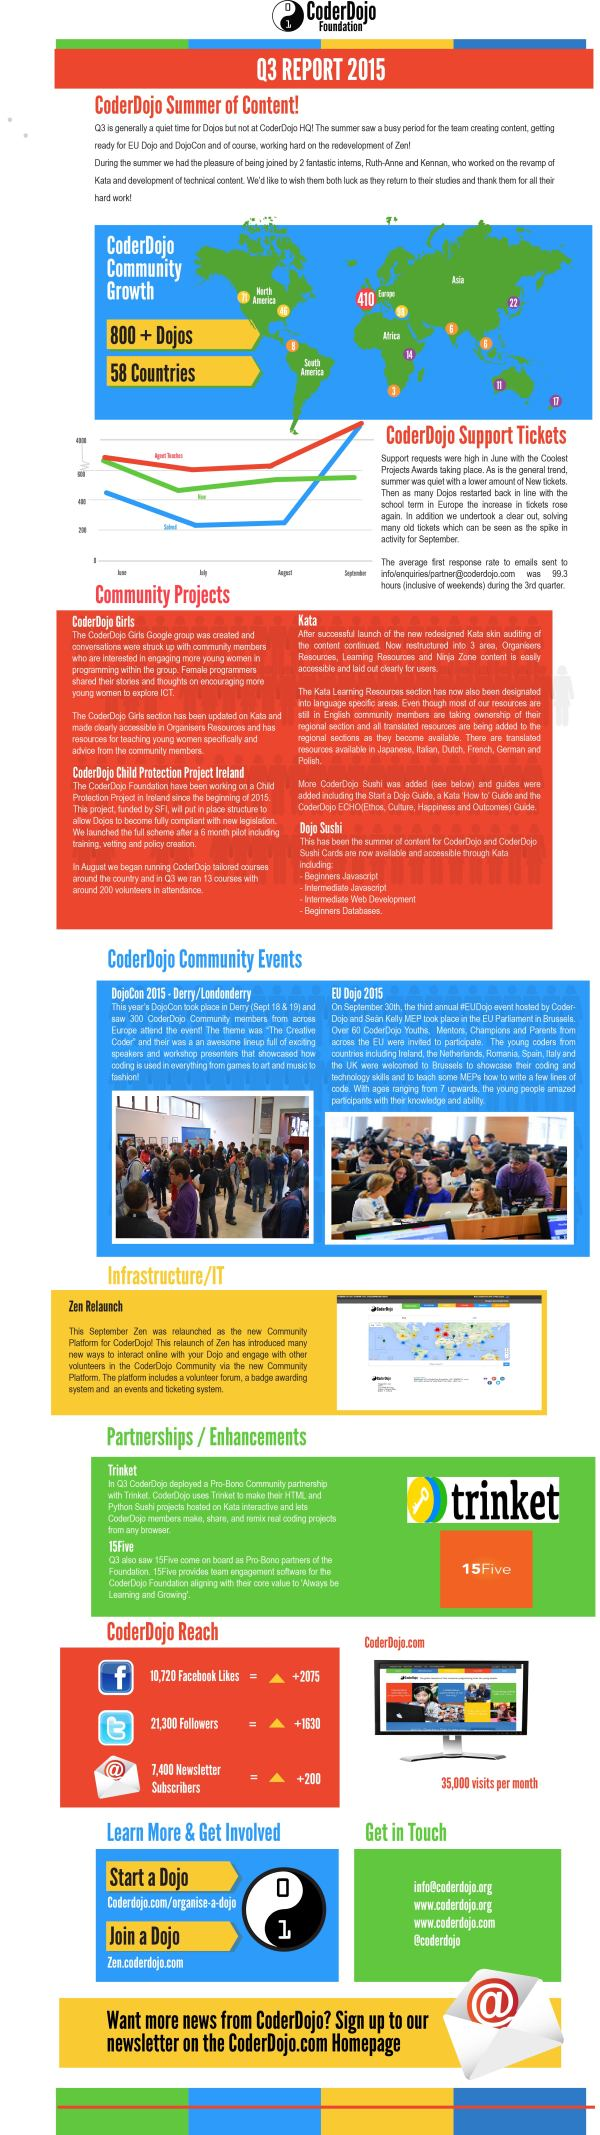 CoderDojo Q32015 Report